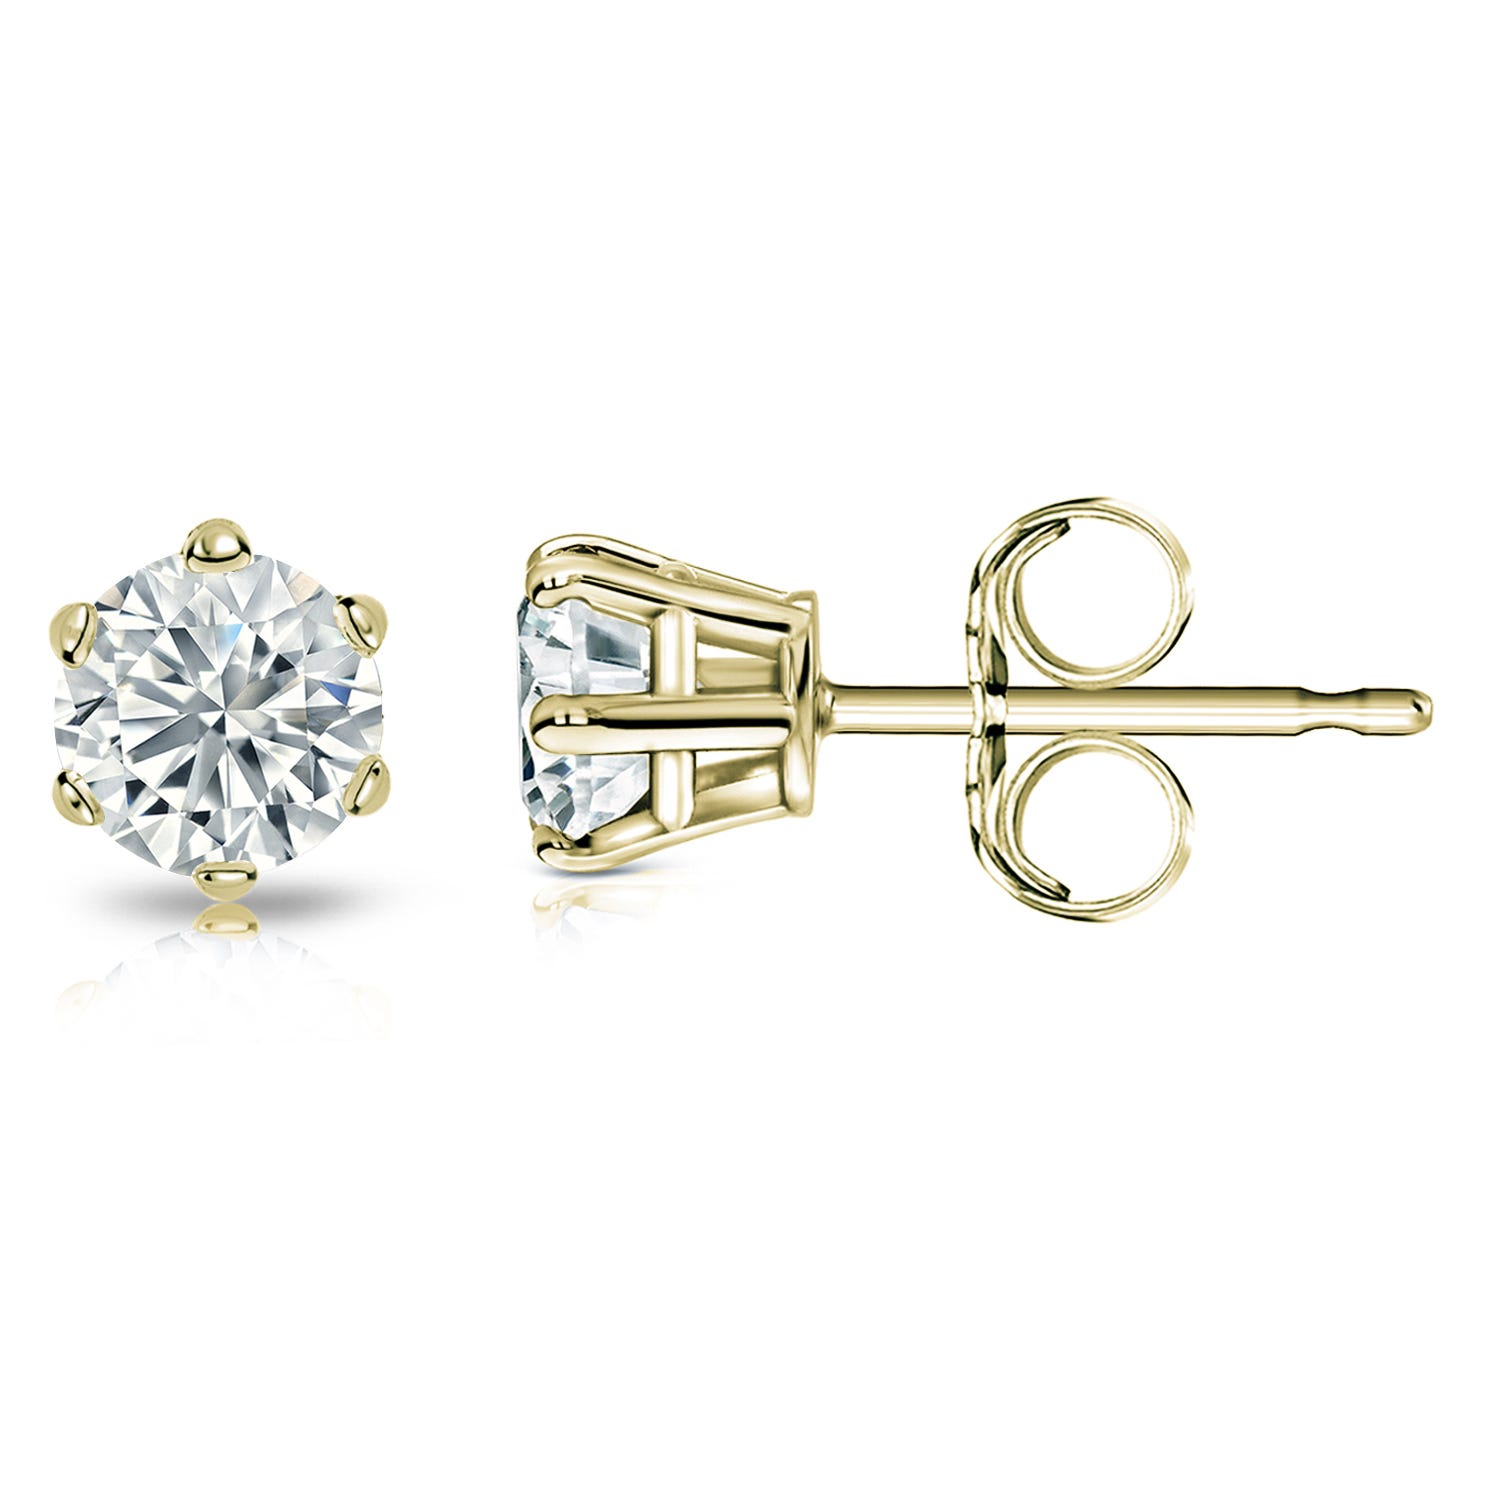 Round Diamond 1ctw. (IJ-I2) Solitaire Stud 6-Prong Earrings in 10K Yellow Gold